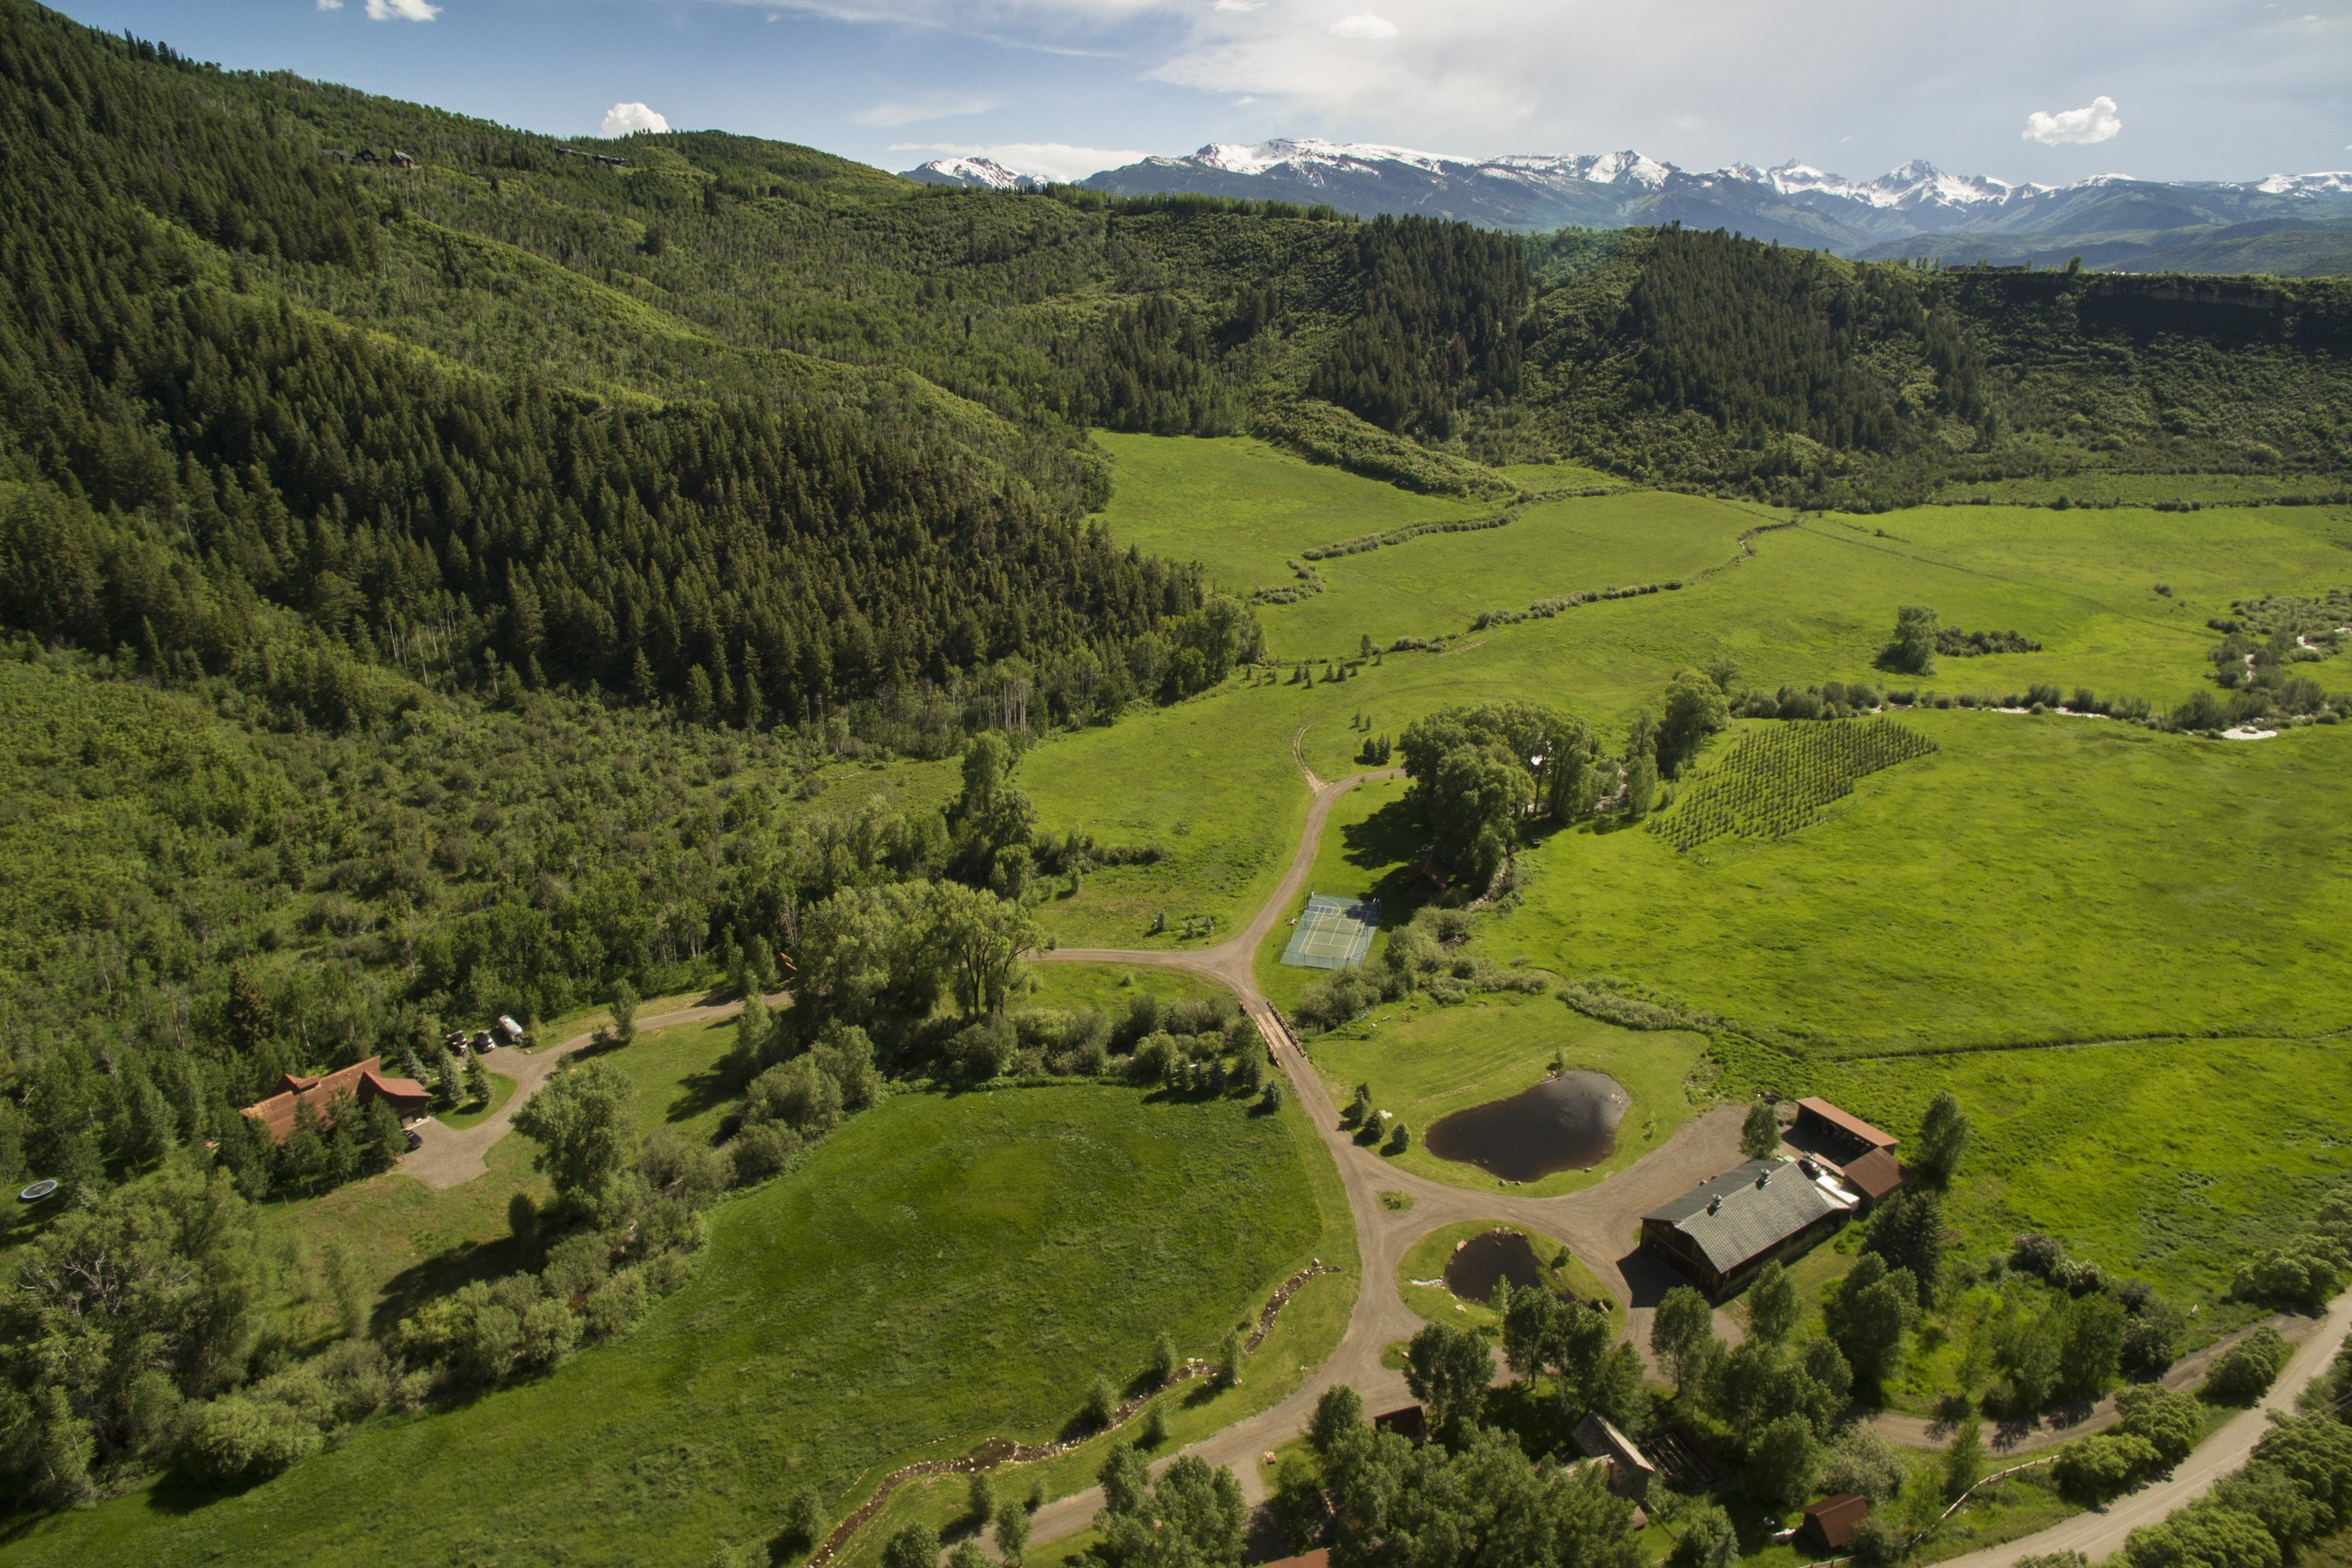 Ferme / Ranch / Plantation pour l Vente à Circle R Ranch 3448 Woody Creek Road Woody Creek, Colorado, 81656 États-Unis